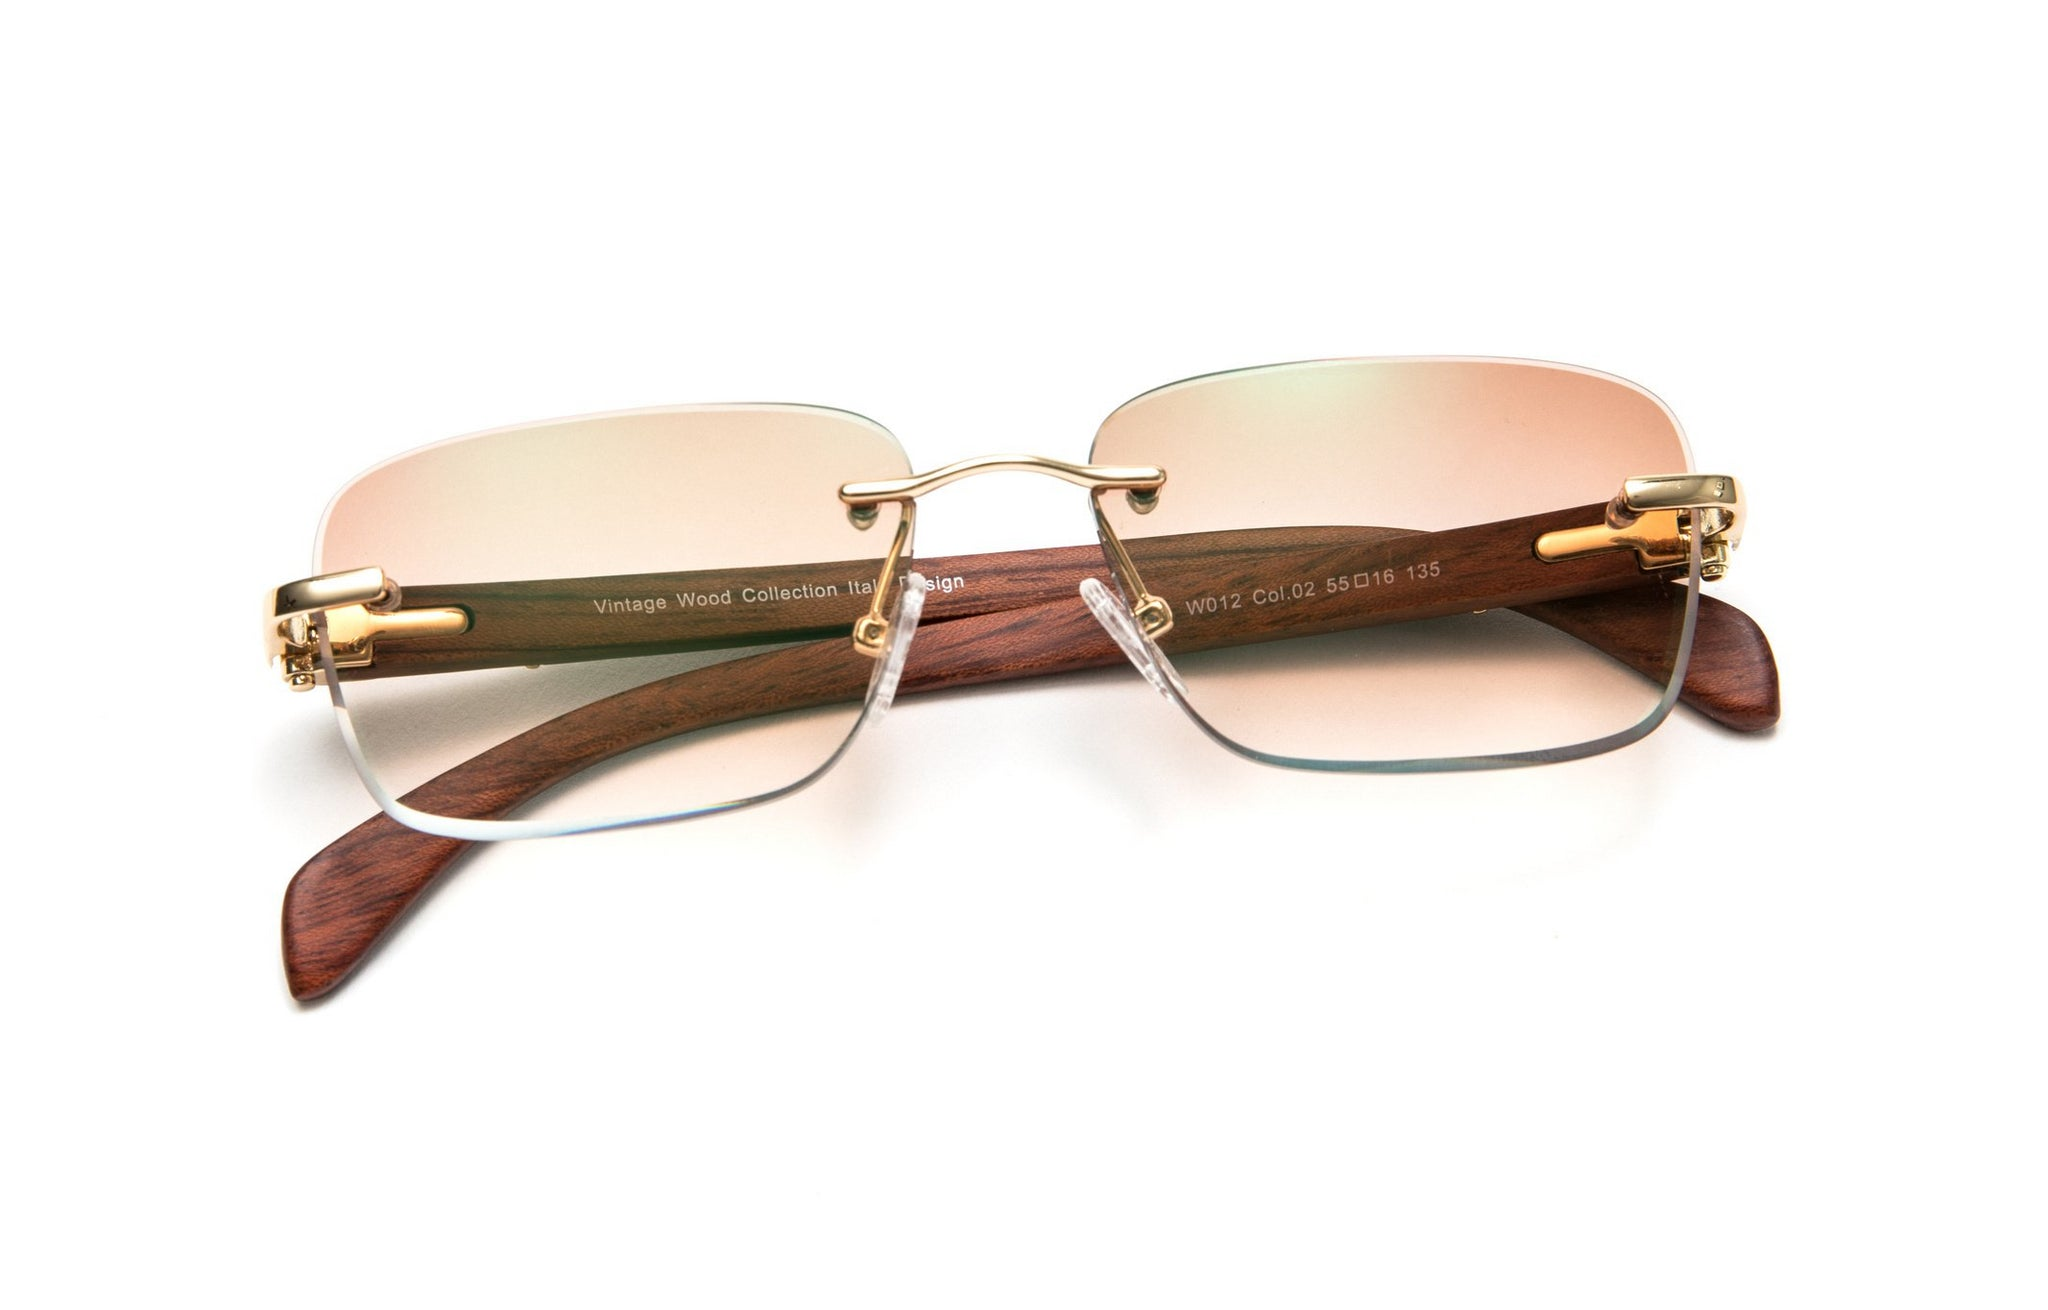 Gold and Wood Sunglasses, Gradient Brown Anti Reflective Bevel Lenses, Rectangular Rimless Frame